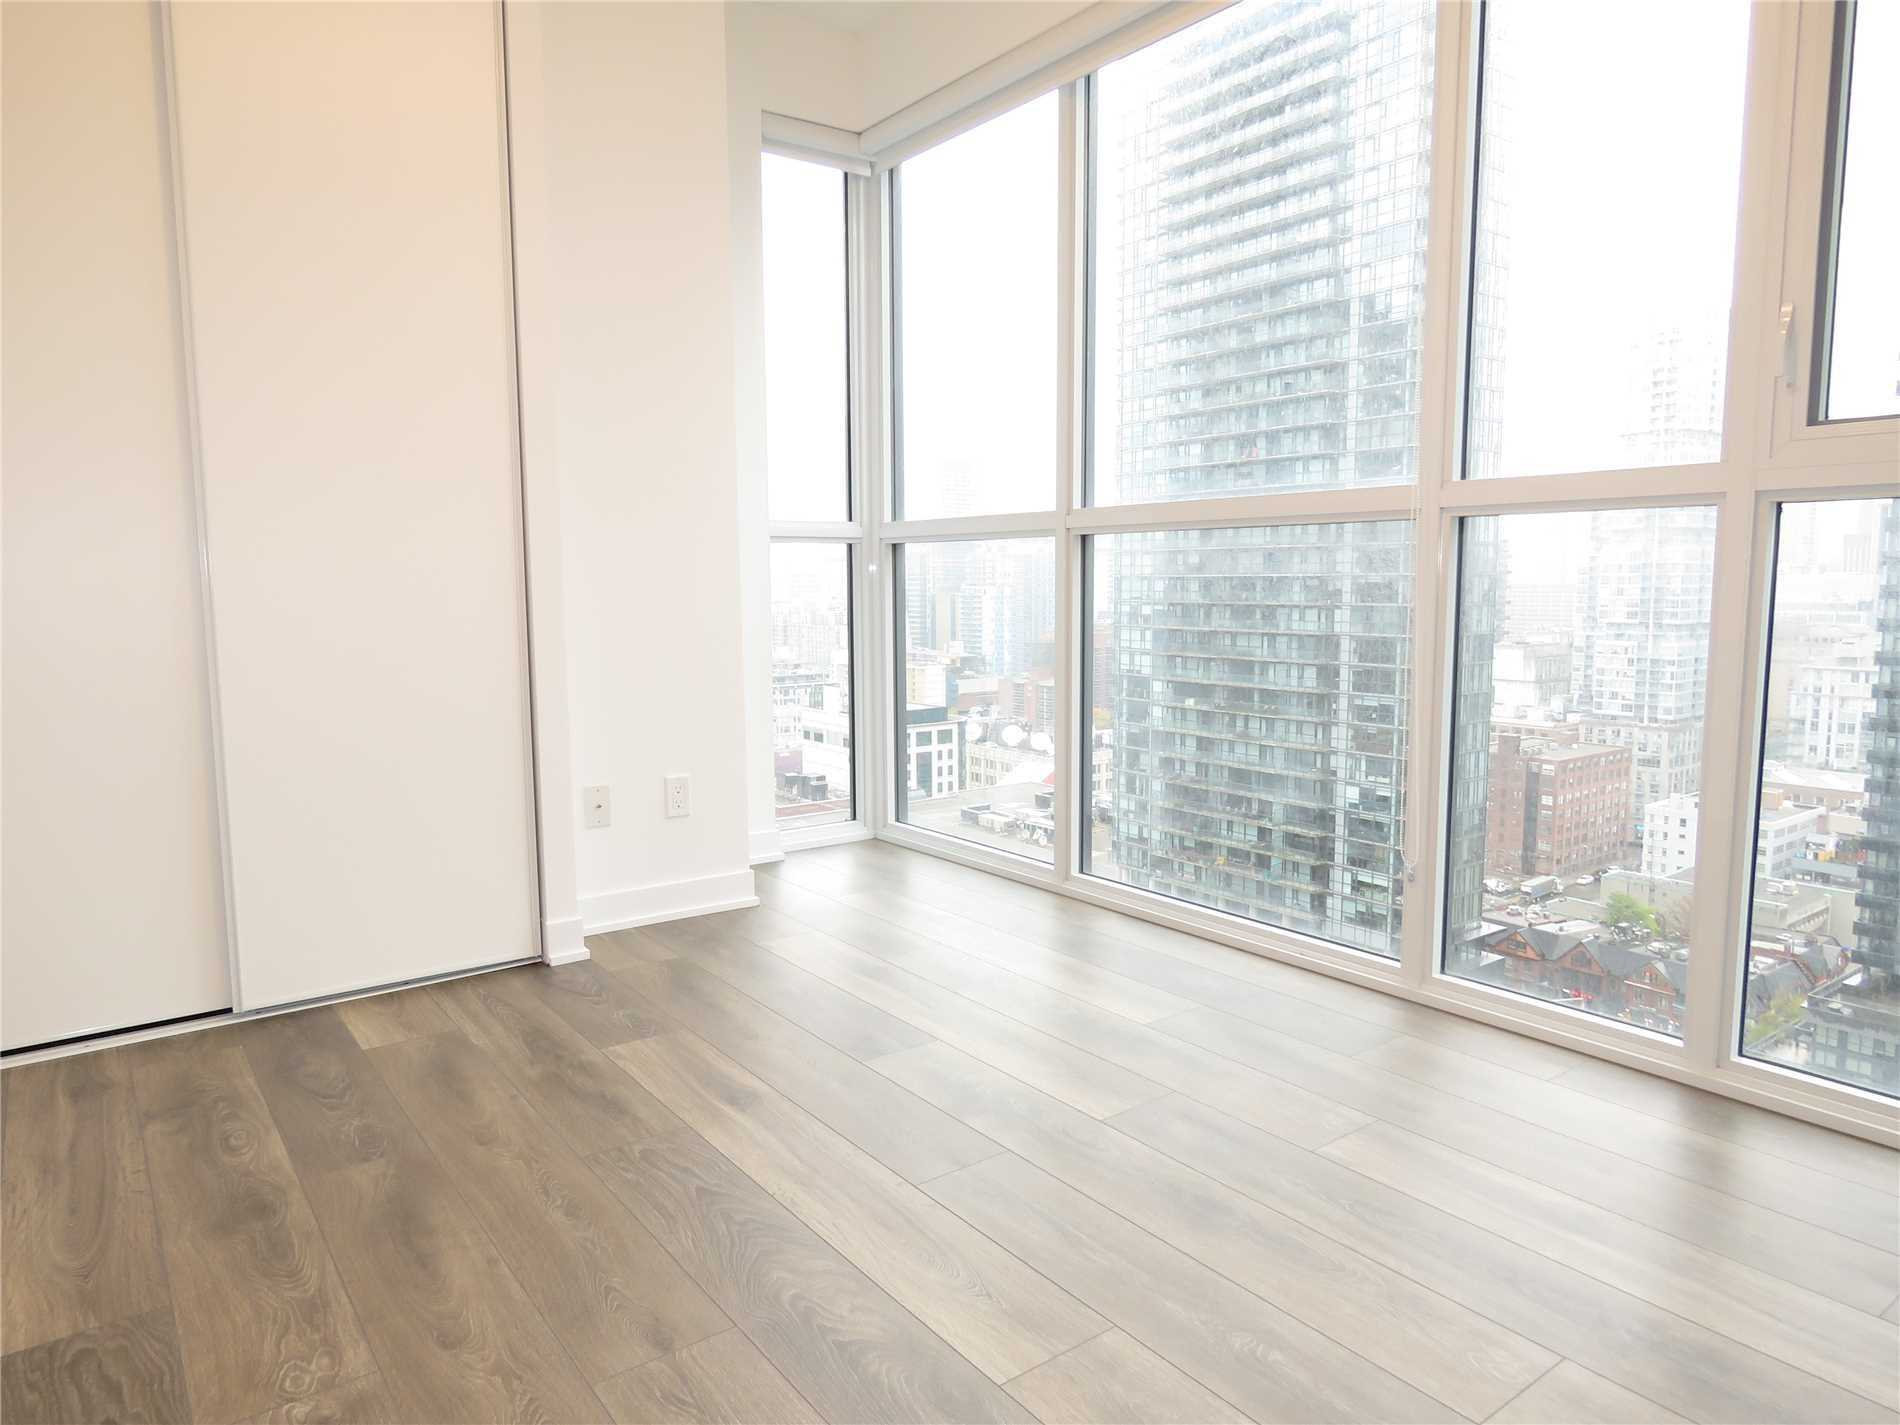 For Rent: 3211 - 87 Peter Street, Toronto, ON | 1 Bed, 1 Bath Condo for $1725.00. See 10 photos!